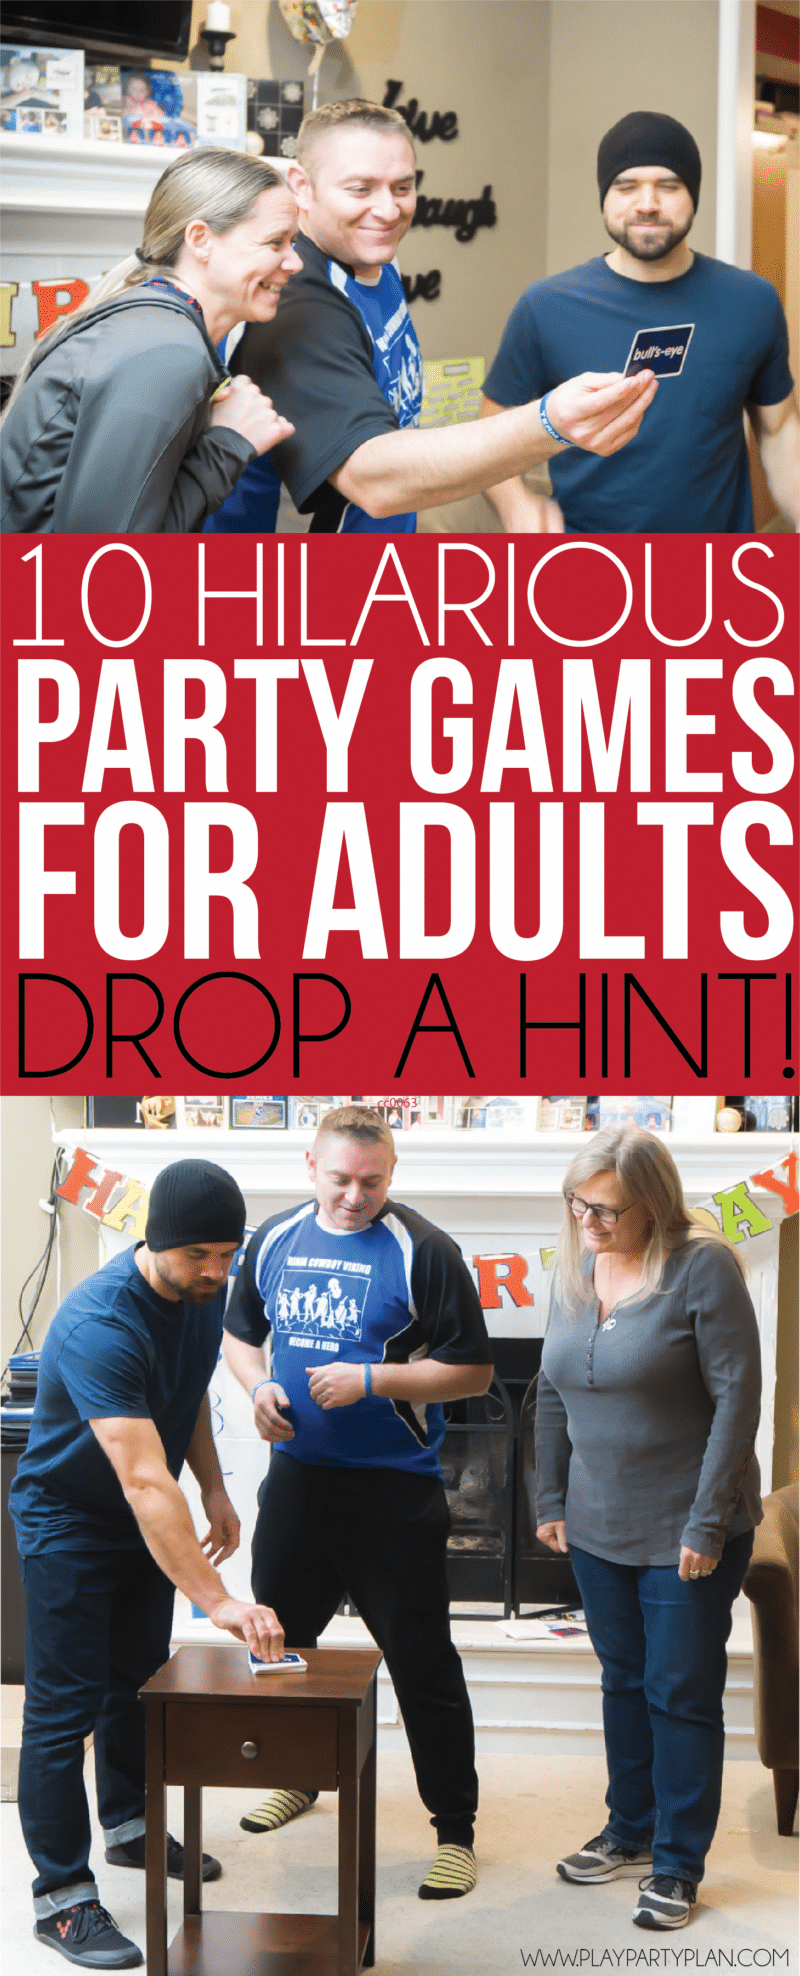 f531e95556a 10 hilarious party games for adults that would work great for teens or for  groups too